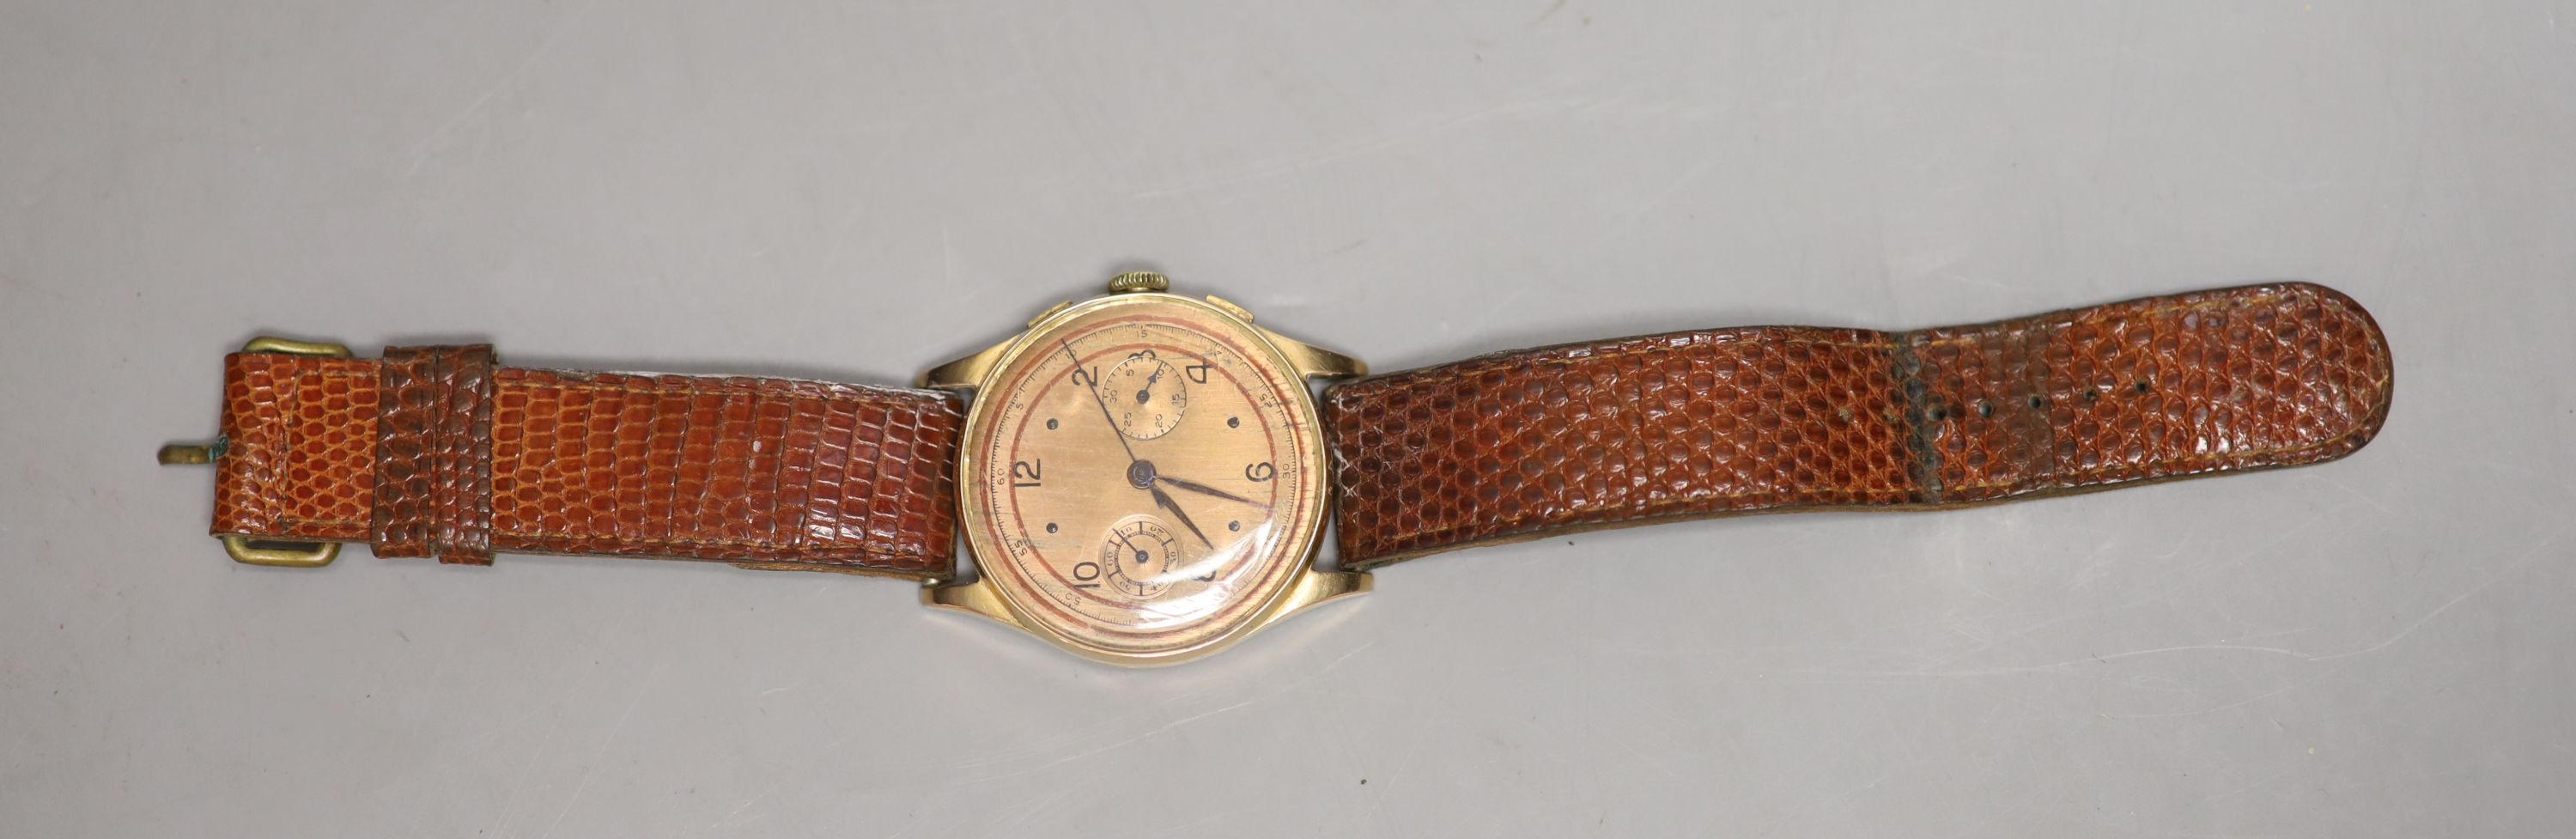 A Swiss 18k yellow metal chronograph manual wind wrist watch, on associated leather strap, with a - Image 2 of 3